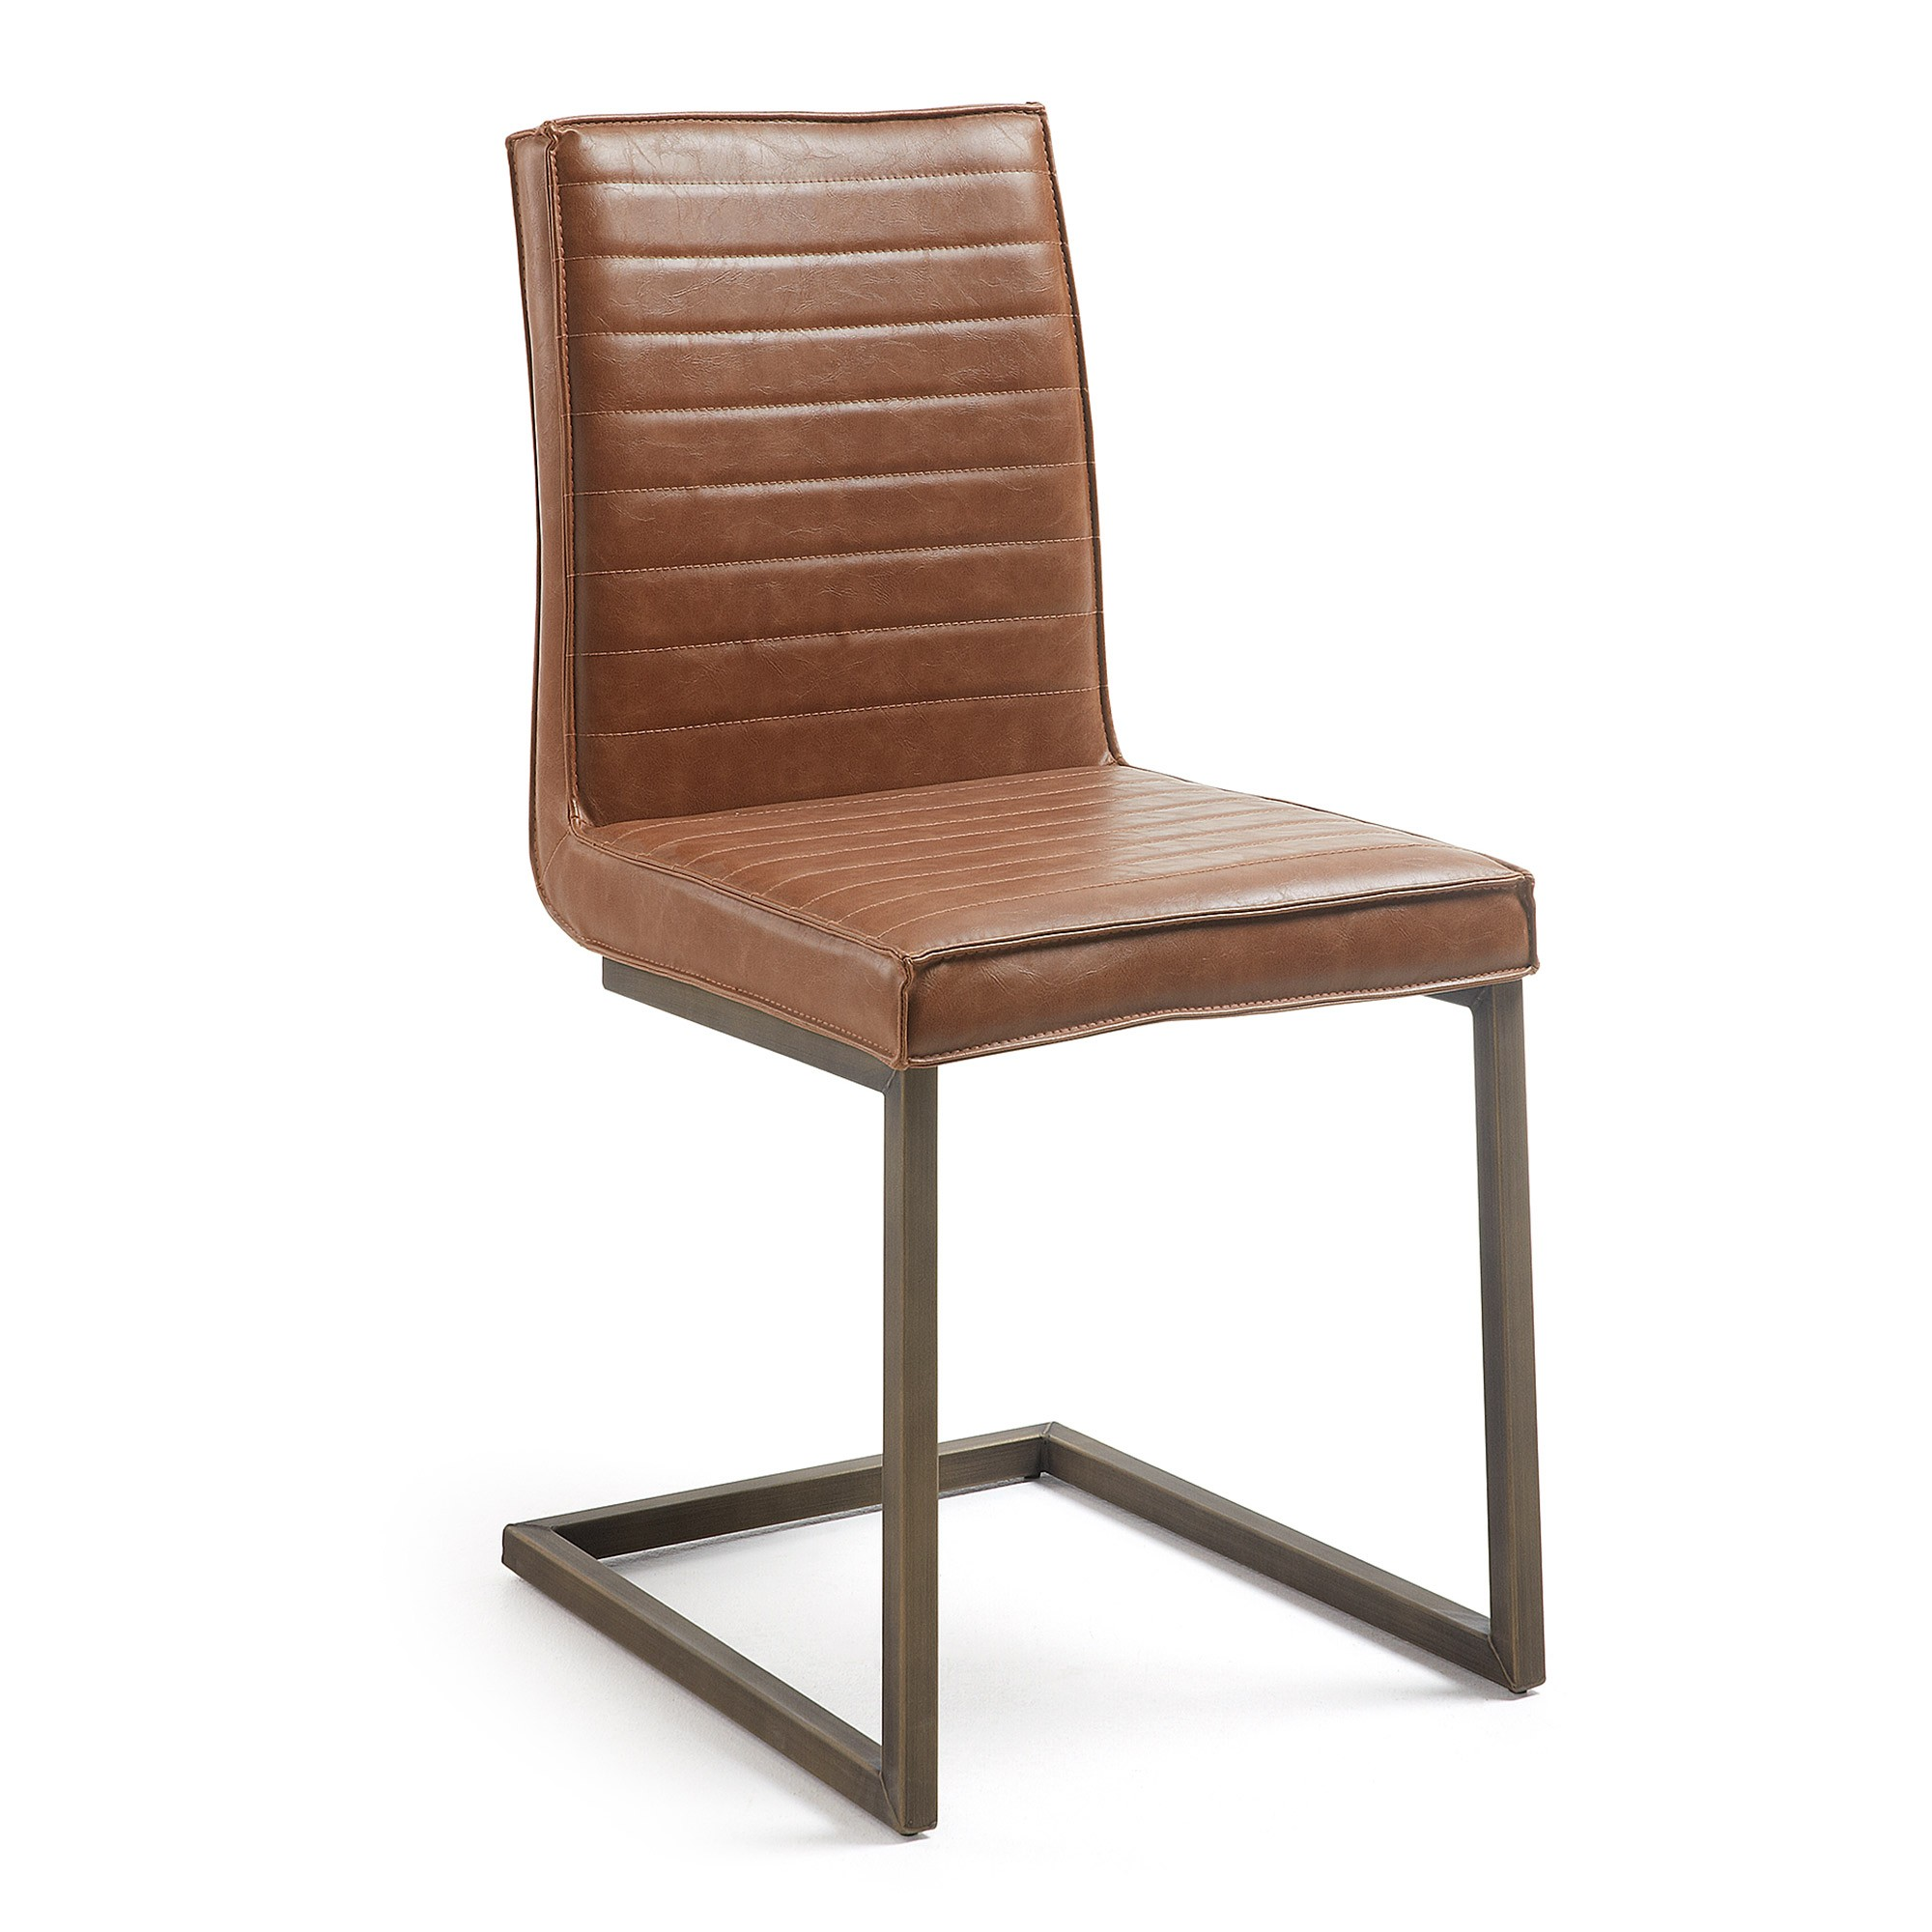 Tayten Faux Leather & Steel Dining Chair, Tan